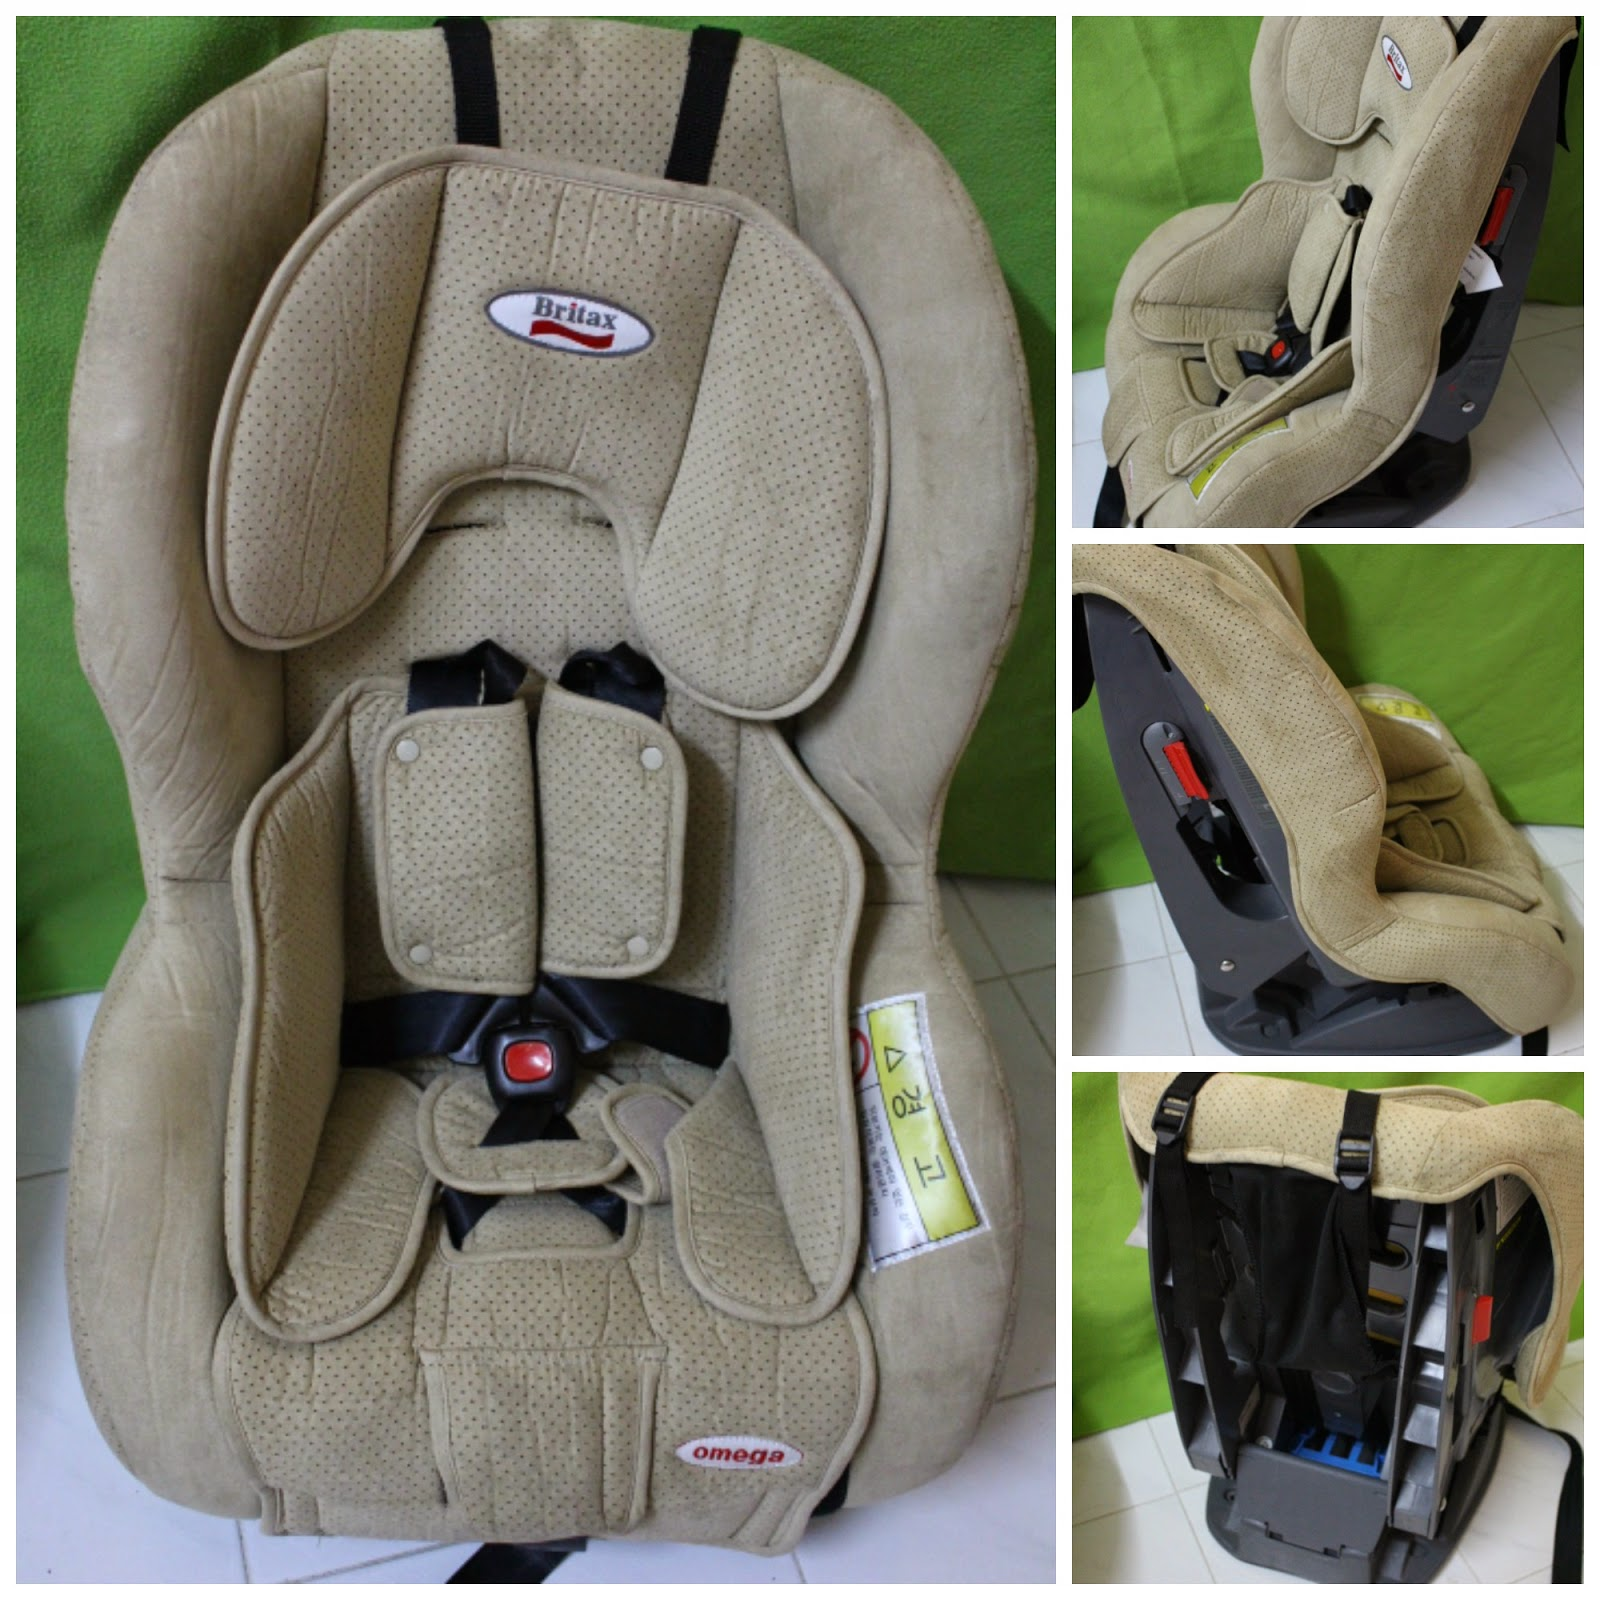 Amy Sweety Store Britax Omega Almond Convertible Car Seat